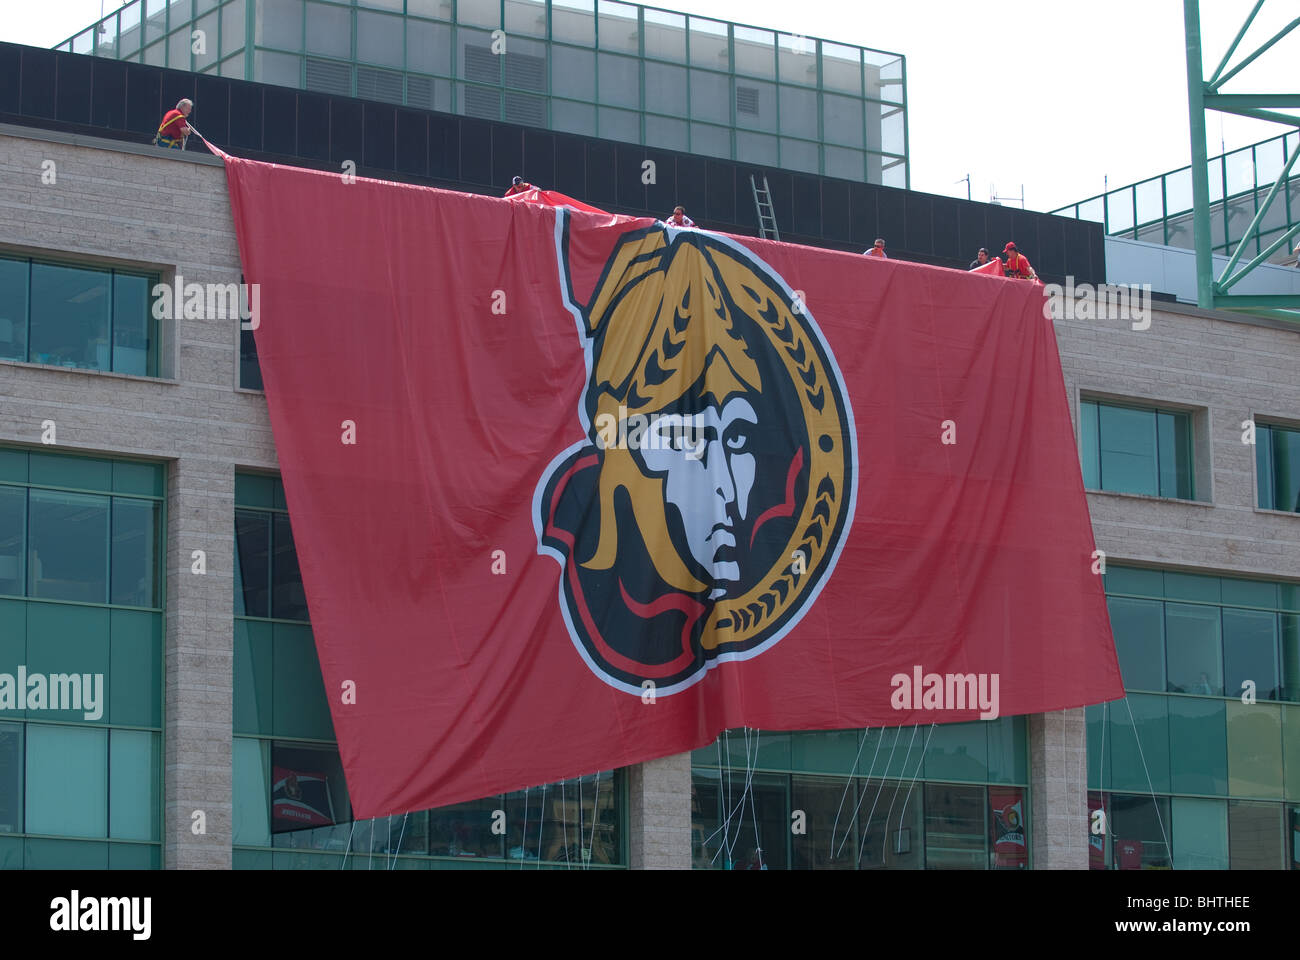 A massive Senators flag is unfurled to drape across Ottawa's City Hall in a pep rally on May 24th 2007. - Stock Image